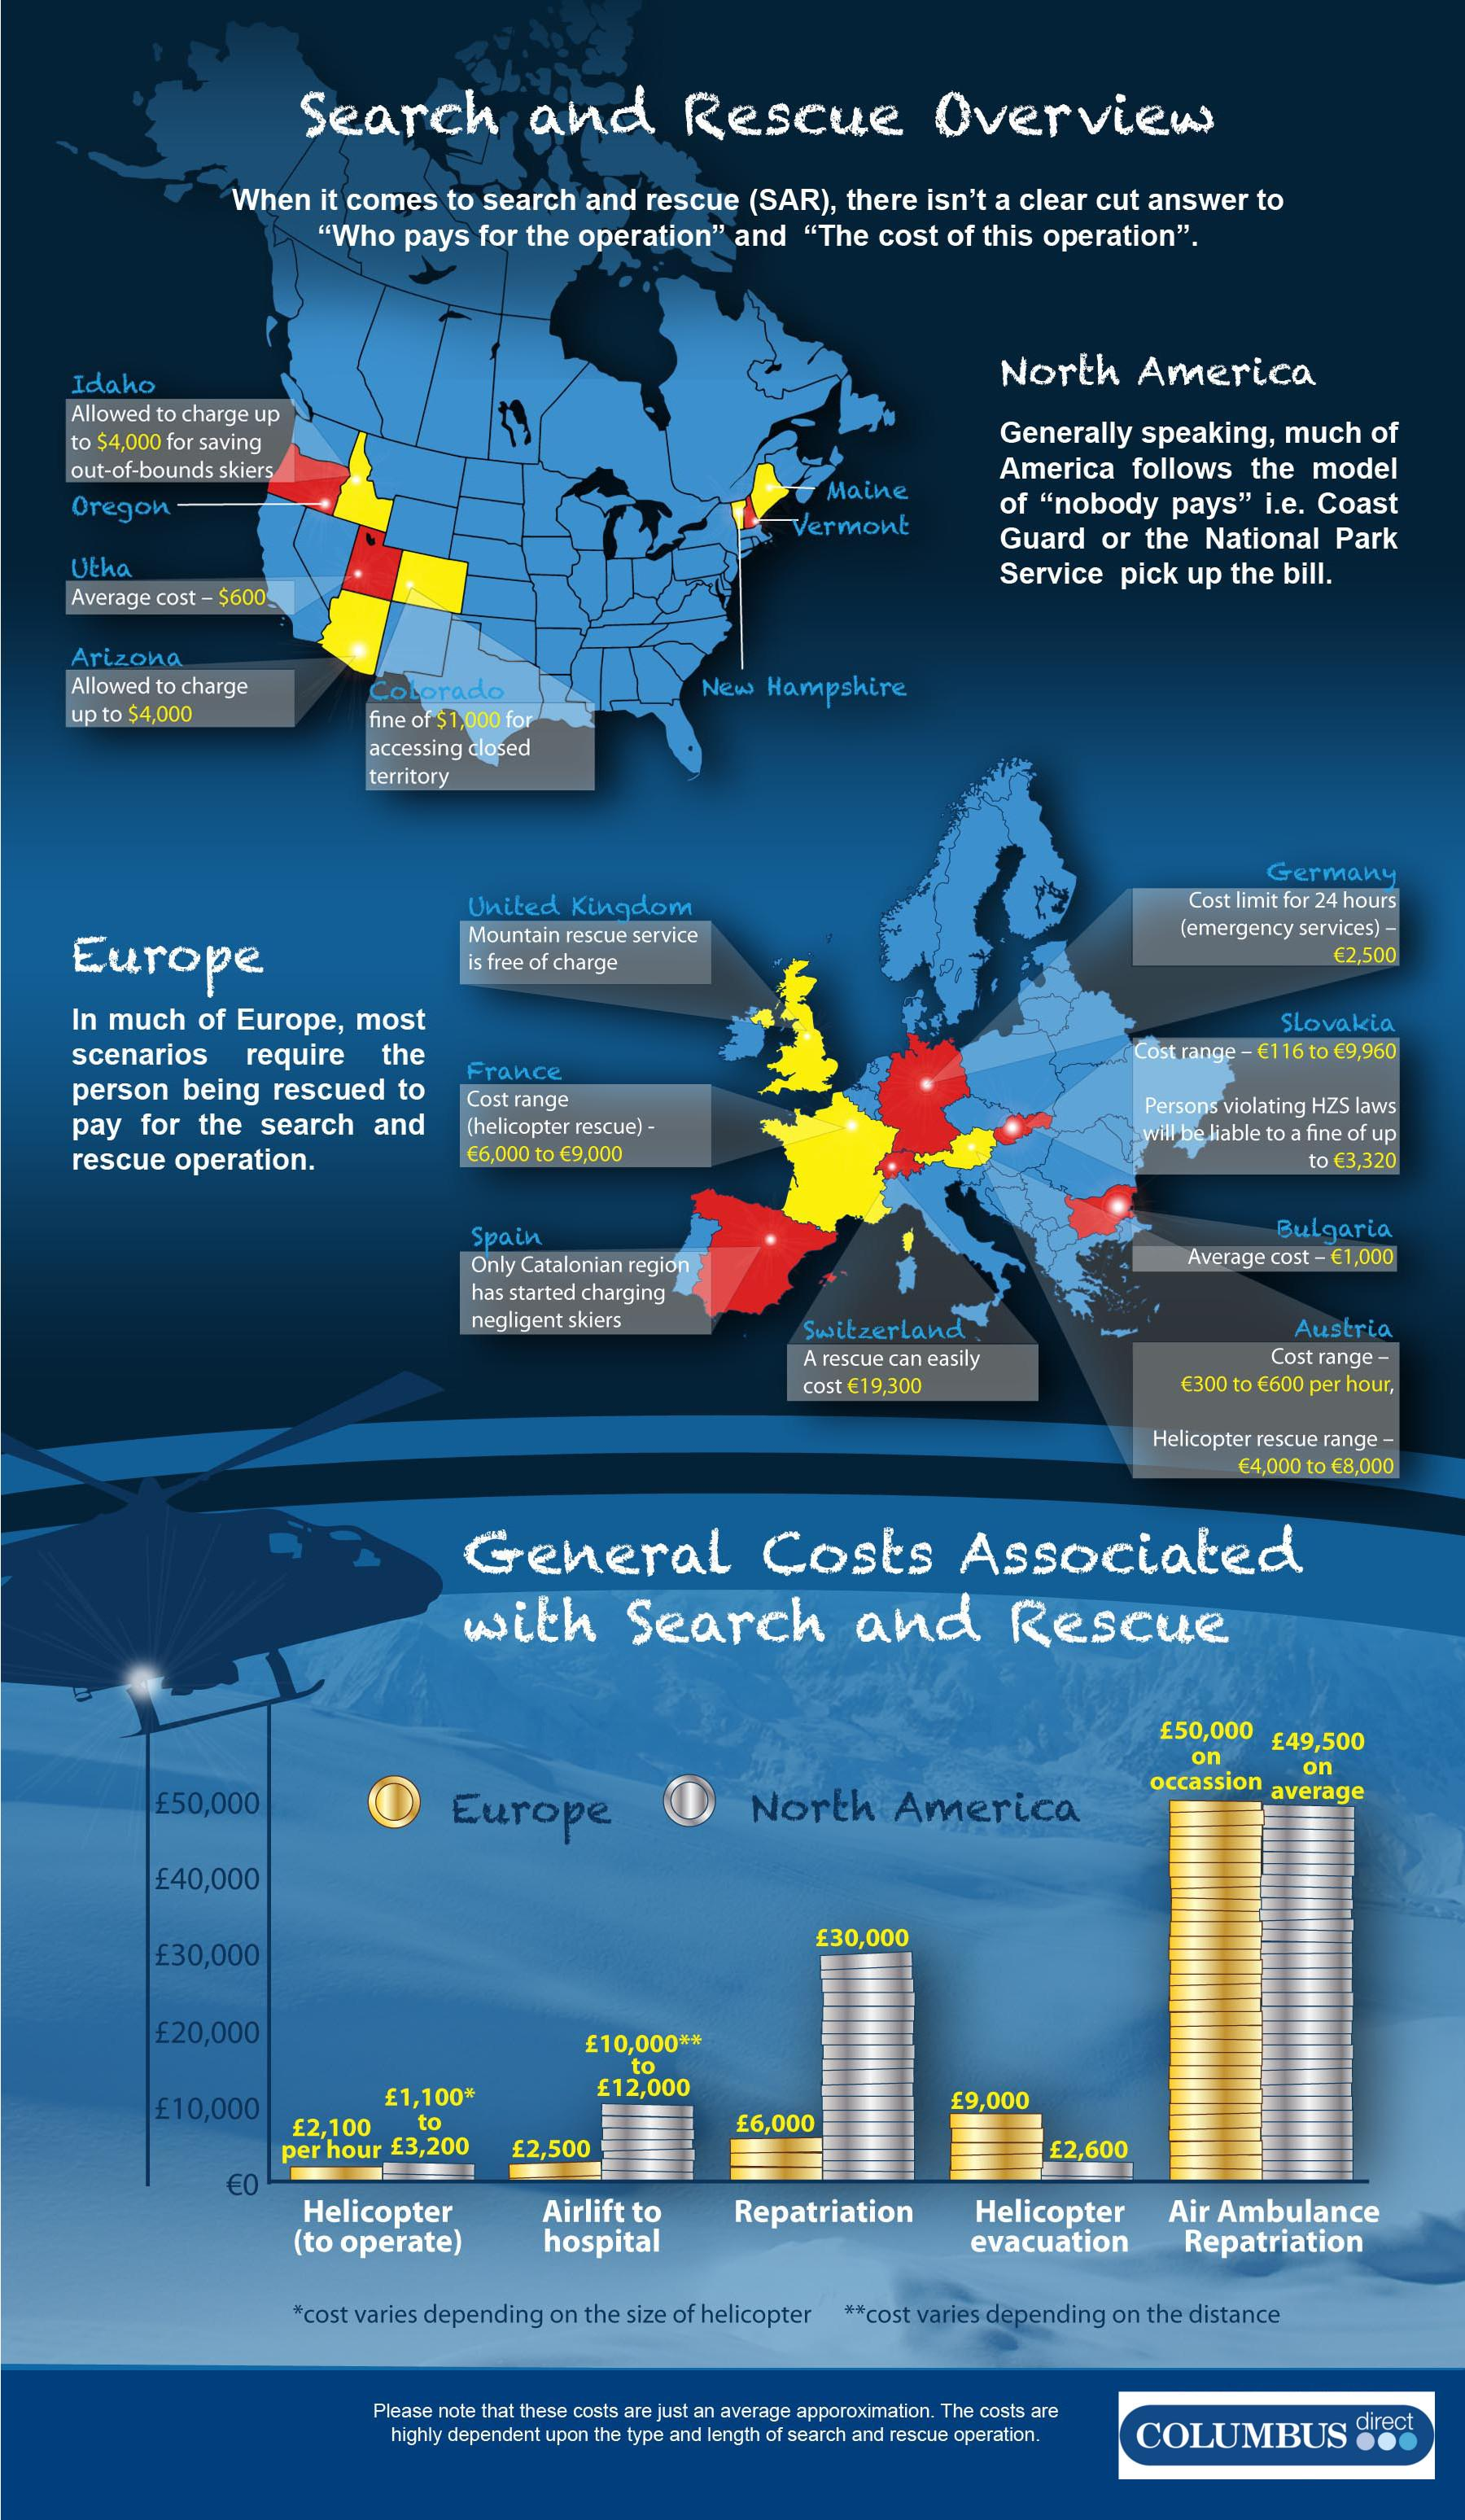 Search and Rescue Costs